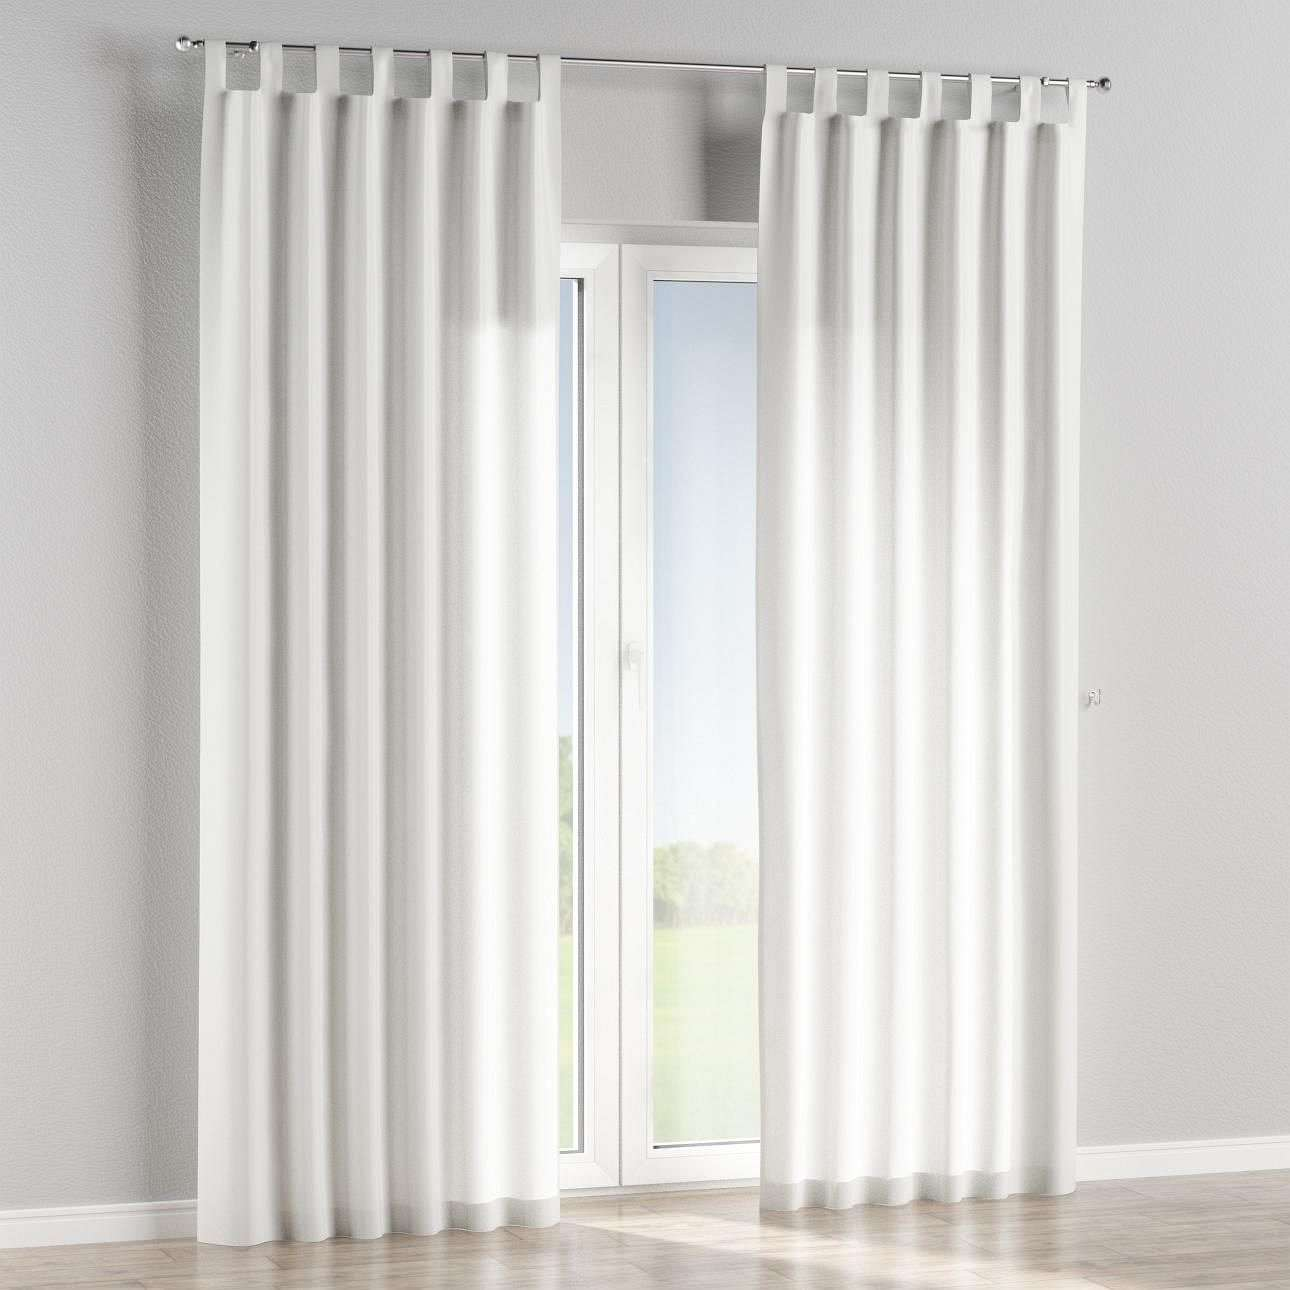 Tab top curtains in collection Londres, fabric: 122-08